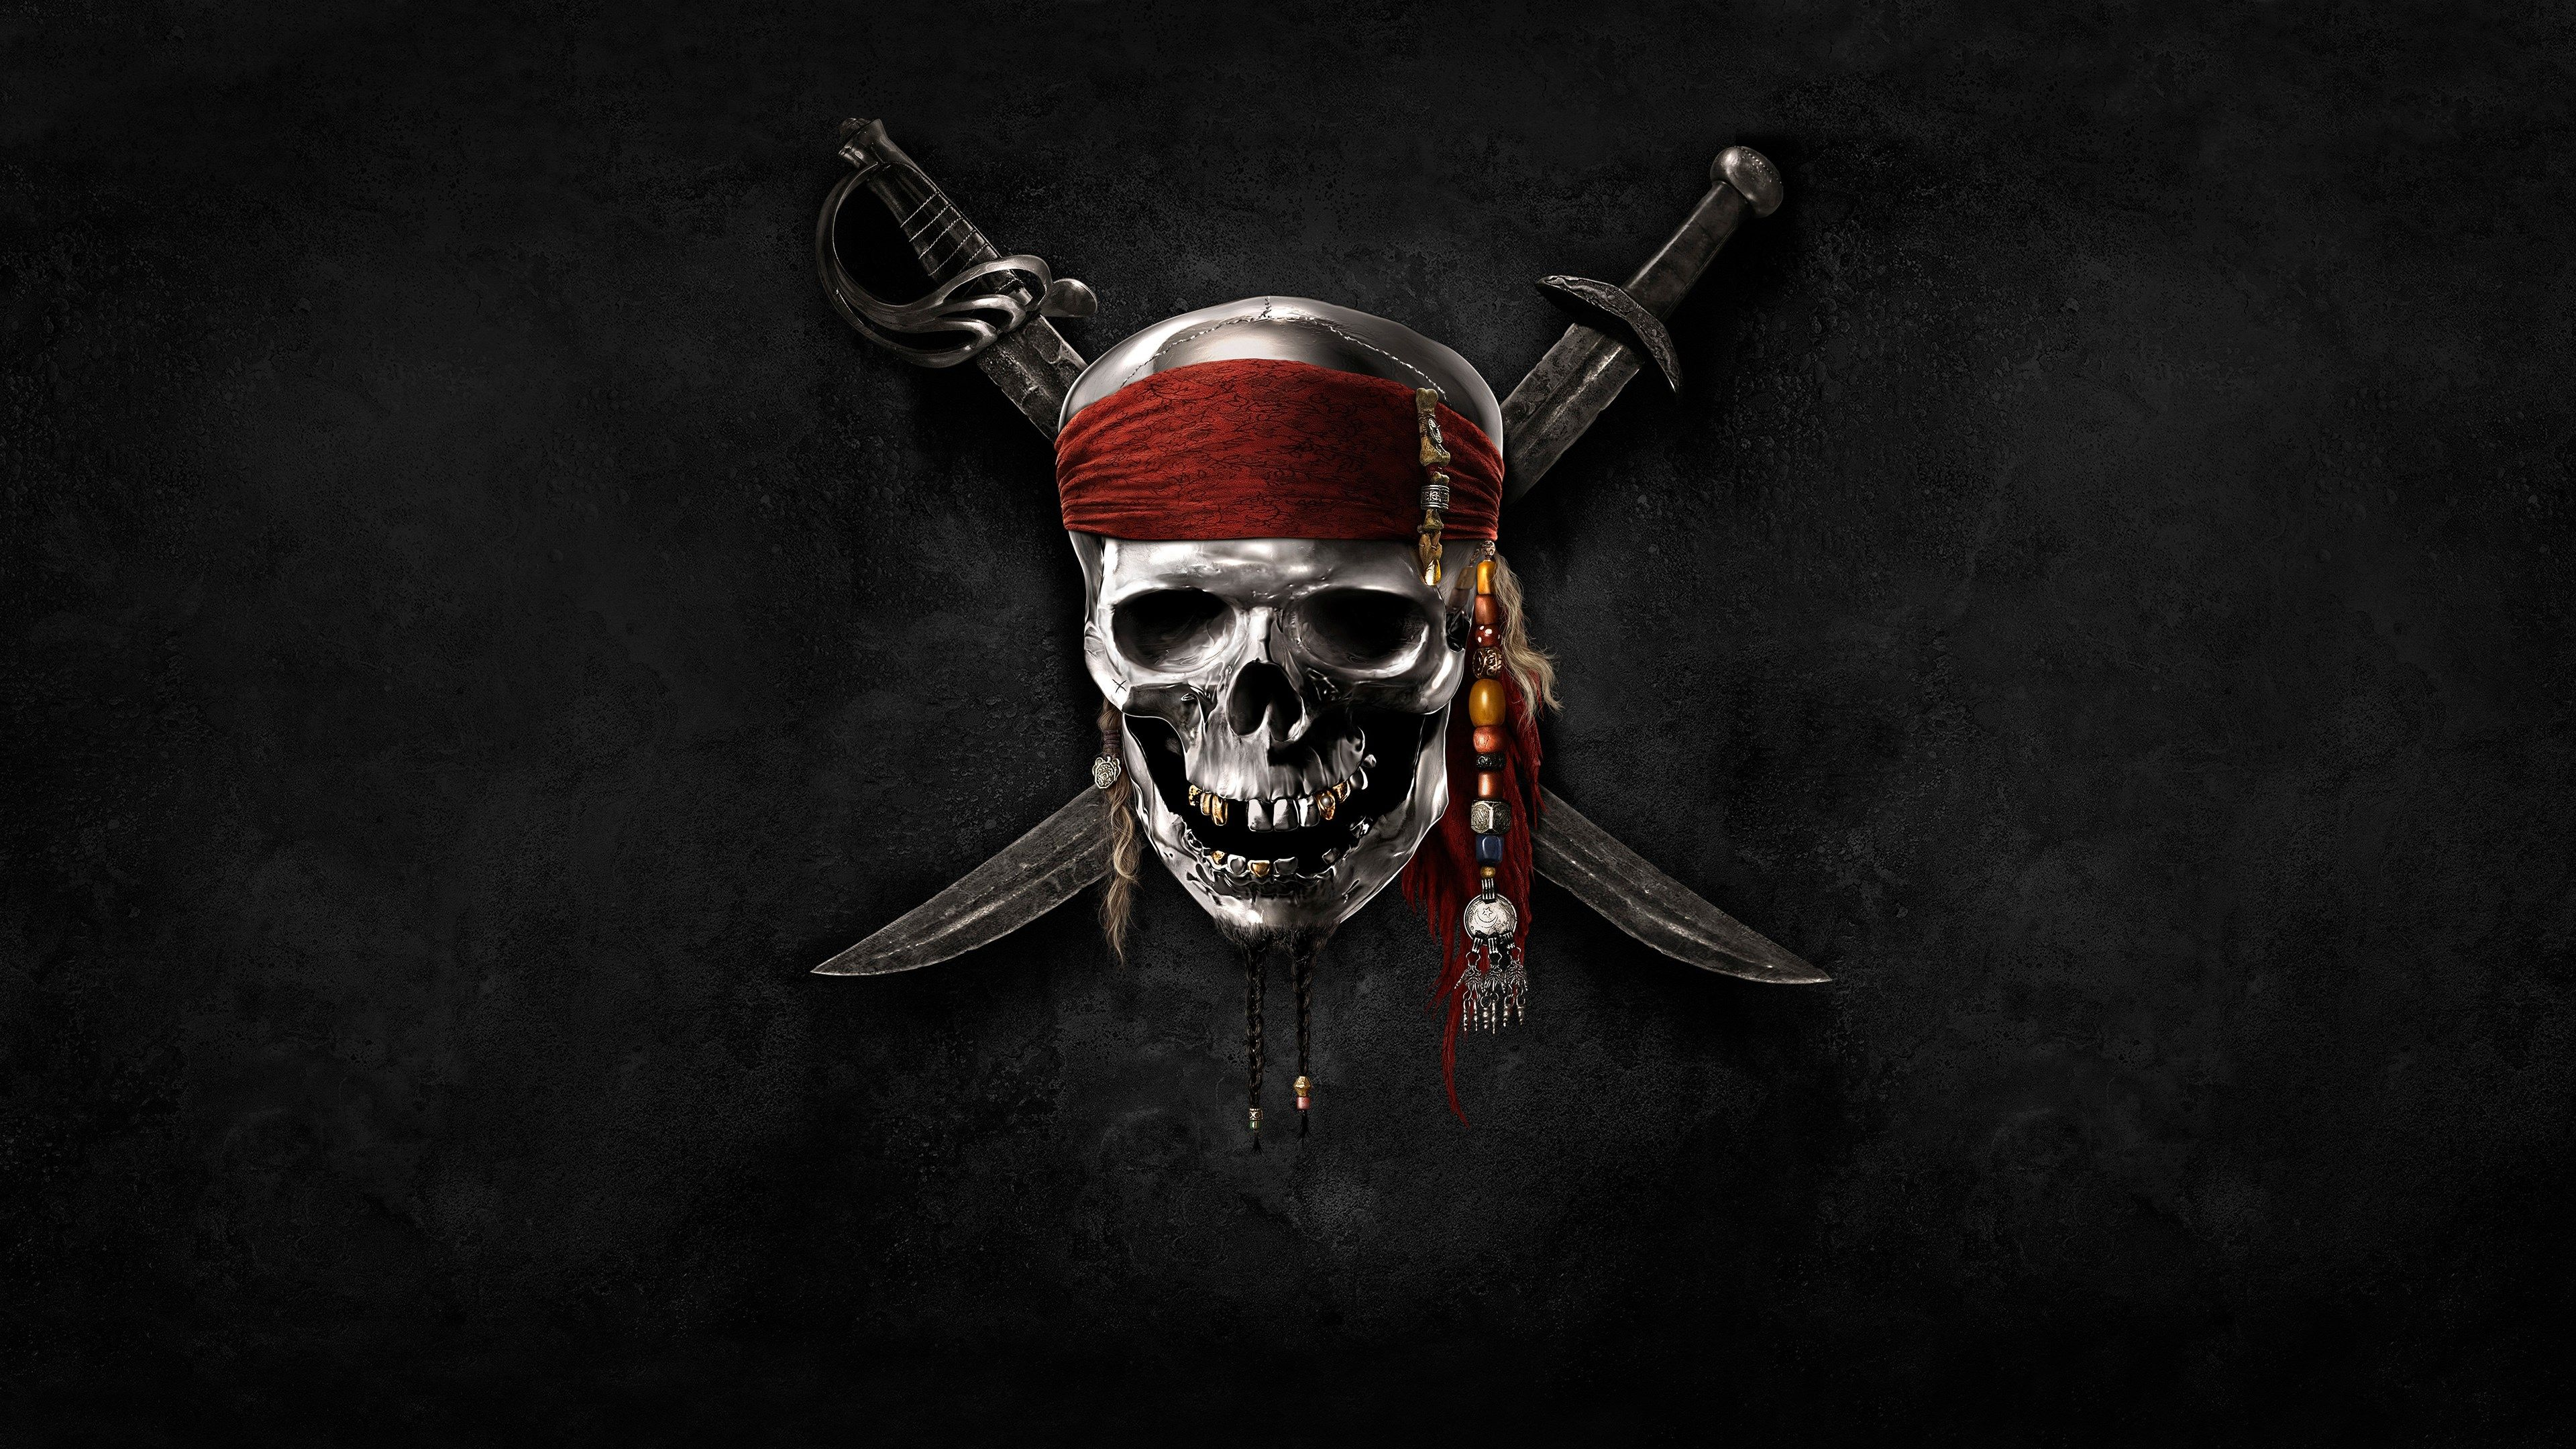 Picture For Desktop Pirates Of The Caribbean Skull Wallpaper Pirates Of The Caribbean Hd Skull Wallpapers